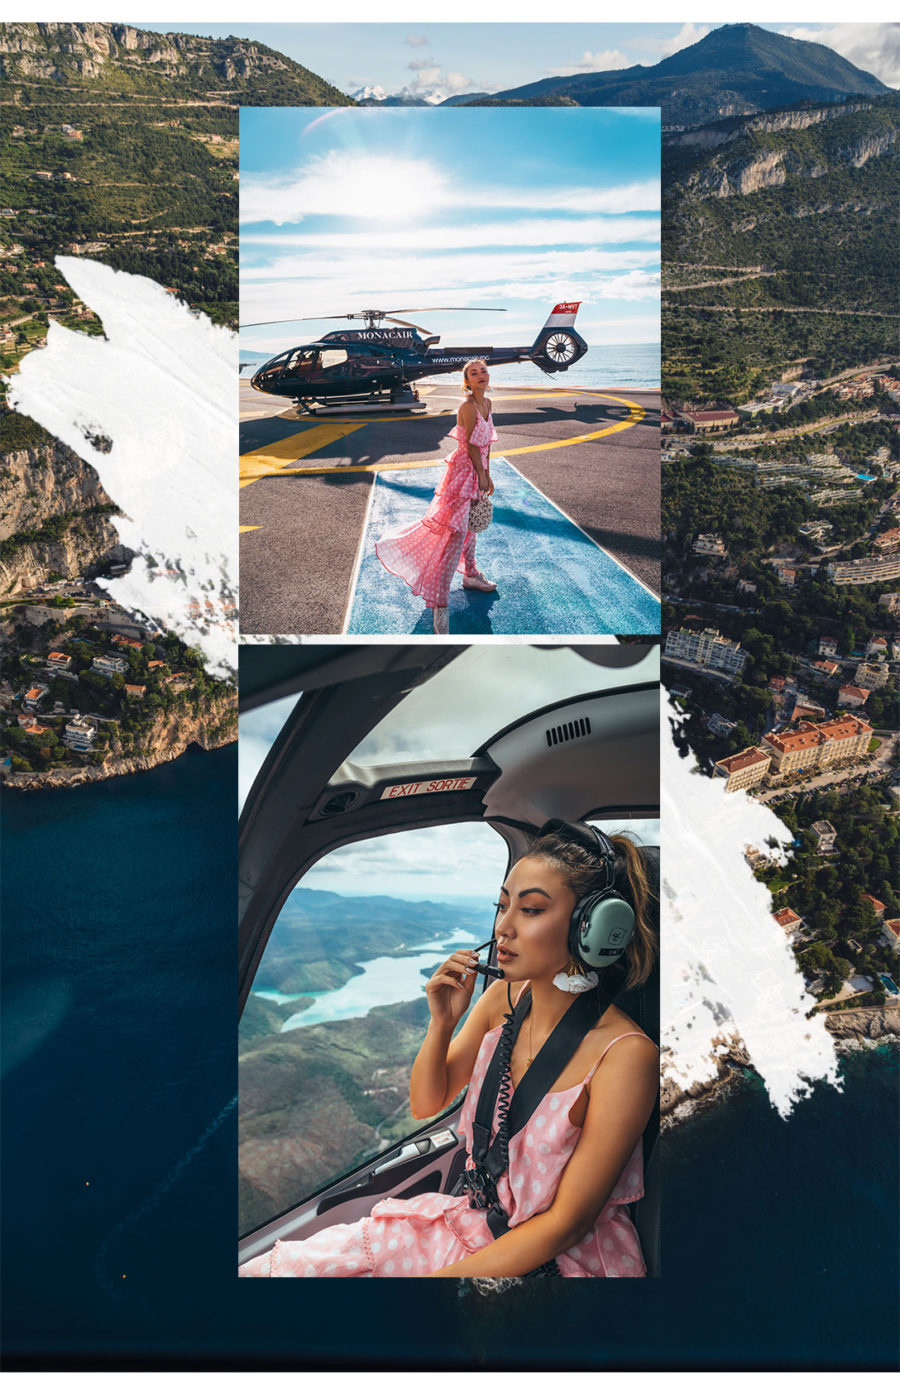 Monte Carlo with Fairmont x Le Labo - tiered dress and sneakers, pink tiered ruffle dress, dress and sneakers outfit, helicopter ride // Notjessfashion.com